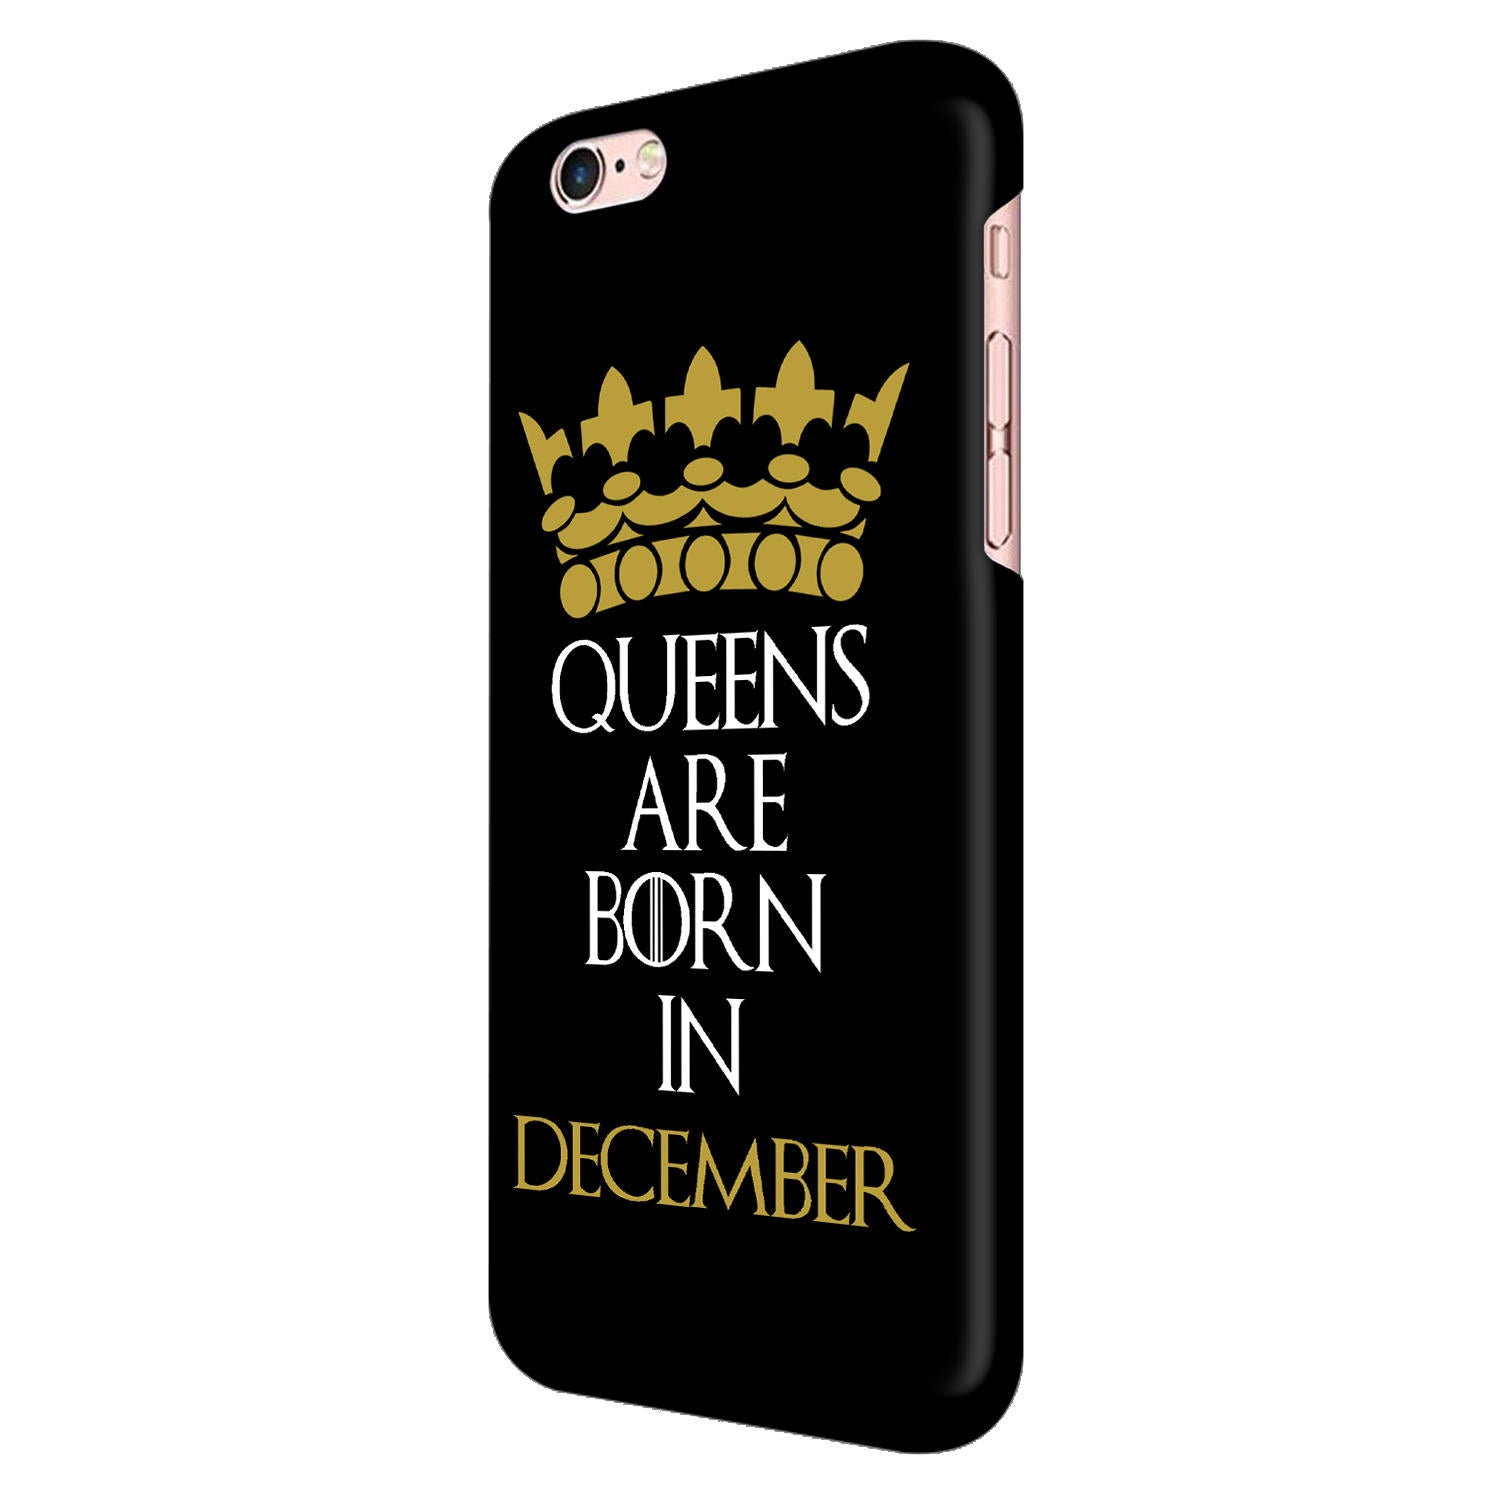 Queens December iPhone 6 Mobile Cover Case - MADANYU